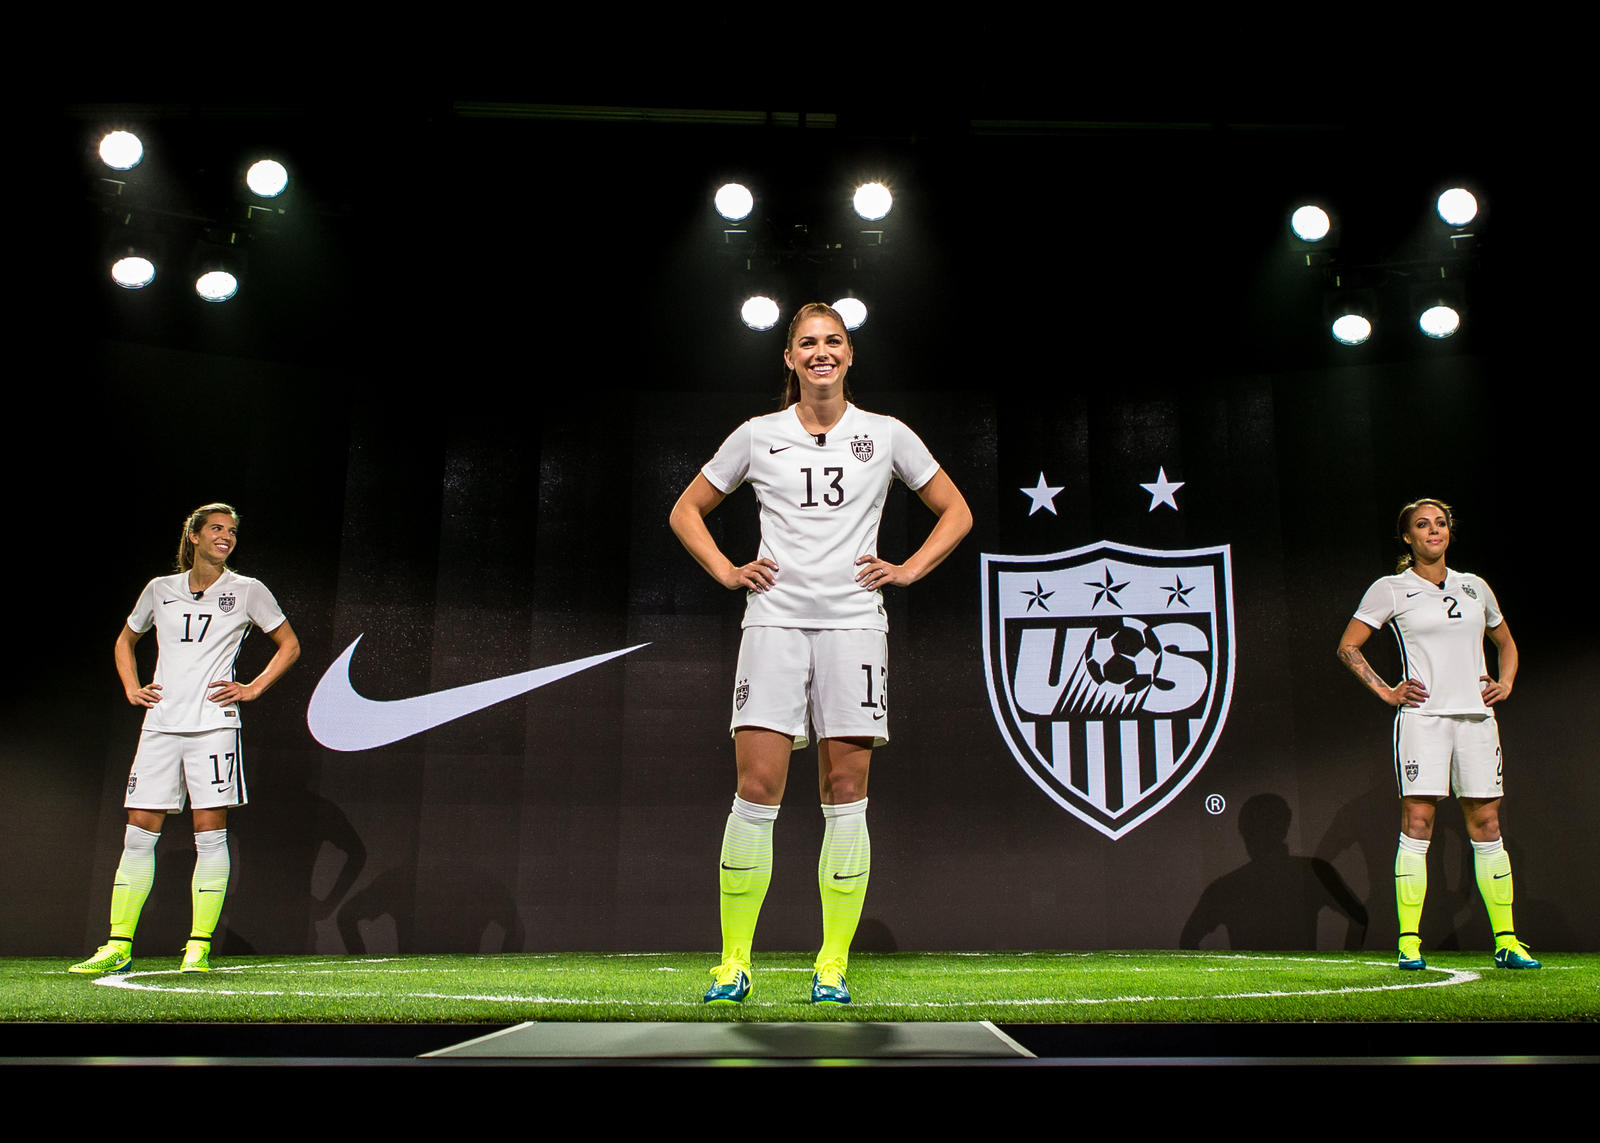 NIKE Women's soccer kit-1.jpeg